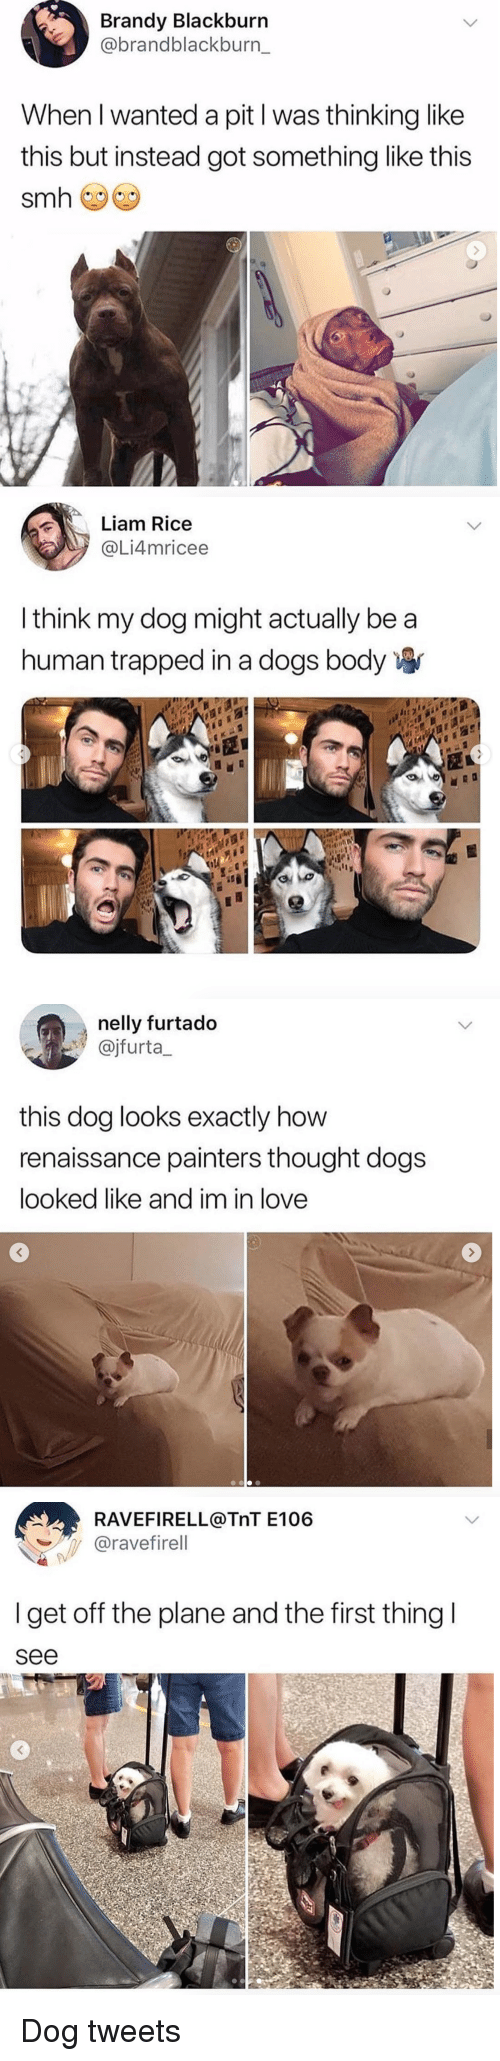 Dogs, Love, and Nelly: Brandy Blackburn  @brandblackburn_  When I wanted a pit l was thinking like  this but instead got something like this   Liam Rice  @Li4mricee  I think my dog might actually be a  human trapped in a dogs body   nelly furtado  ajfurta  this dog looks exactly how  renaissance painters thought dogs  looked like and im in love   RAVEFIRELL@TnT E106  ︶ -,. @ravefirell  I get off the plane and the first thing  see Dog tweets